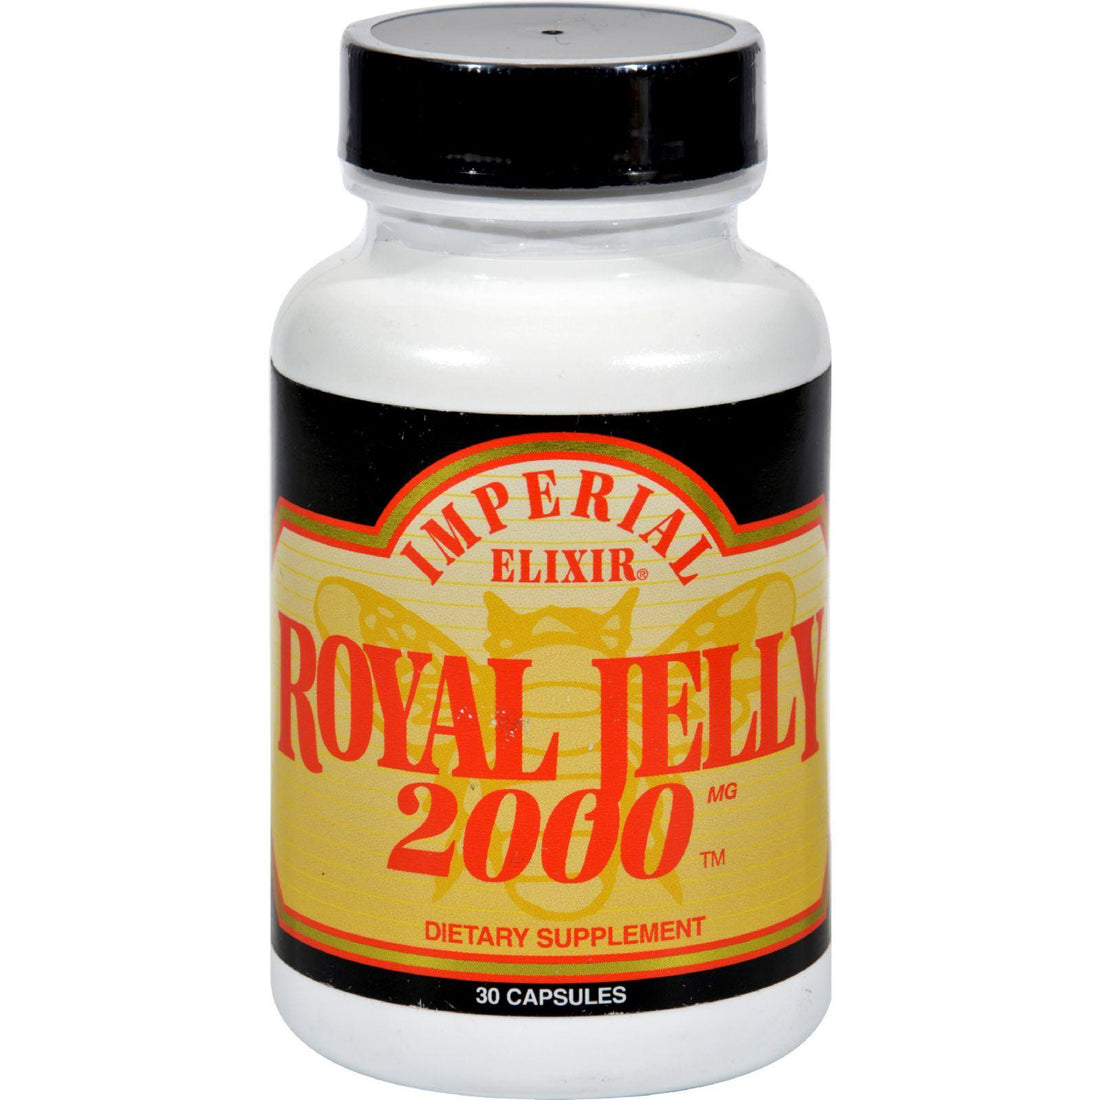 Mother Mantis: Imperial Elixir Royal Jelly 2000 - 2000 Mg - 30 Capsules Imperial Elixir